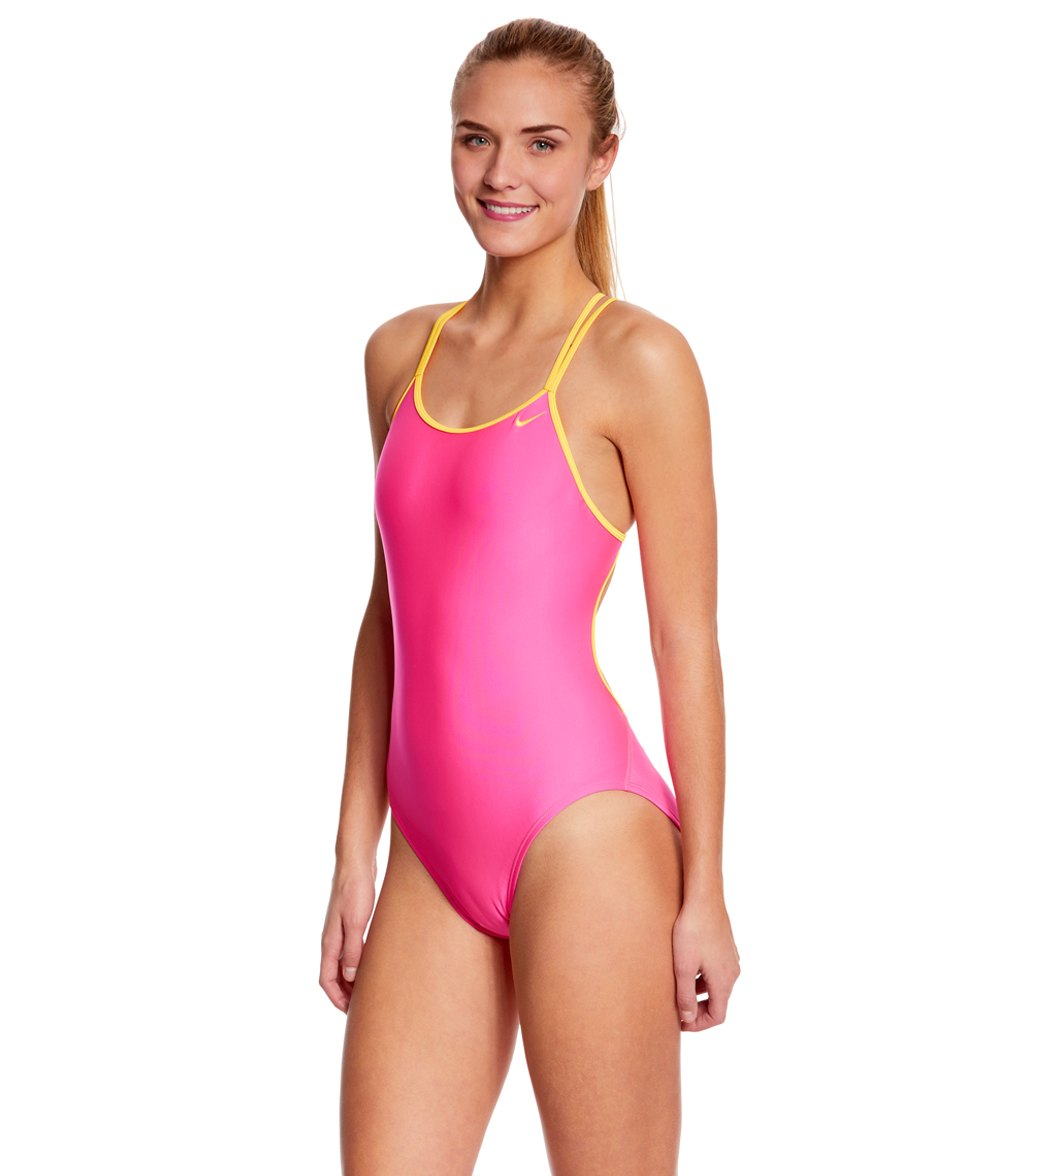 080e079fe35 Nike SwimOutlet Exclusive Solid Spiderback Tank One Piece Swimsuit ...